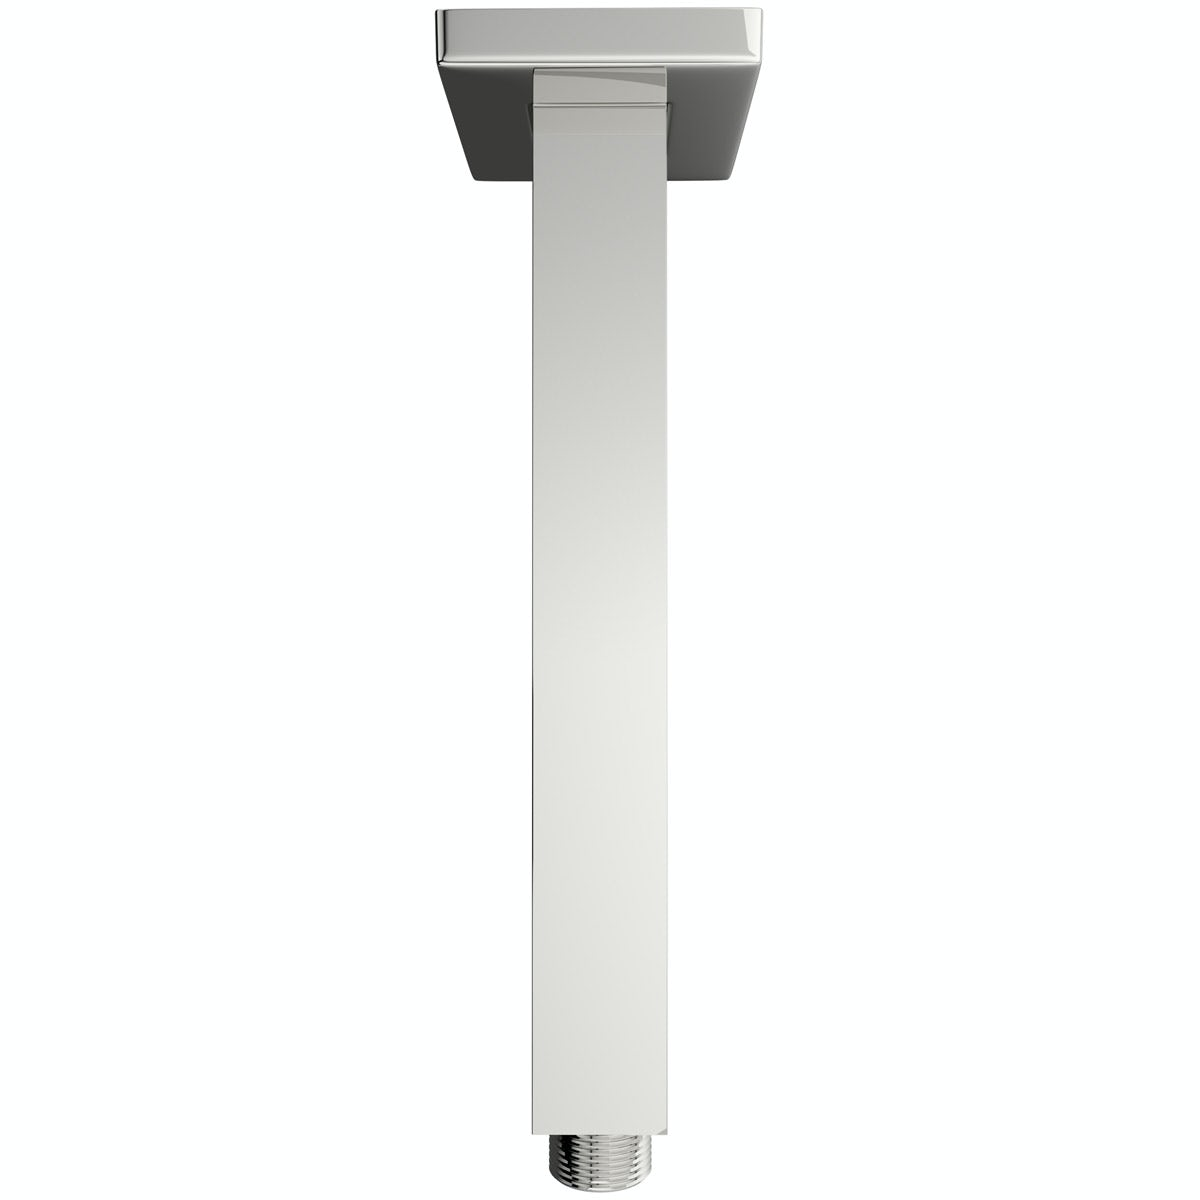 Mode Square ceiling shower arm 200mm